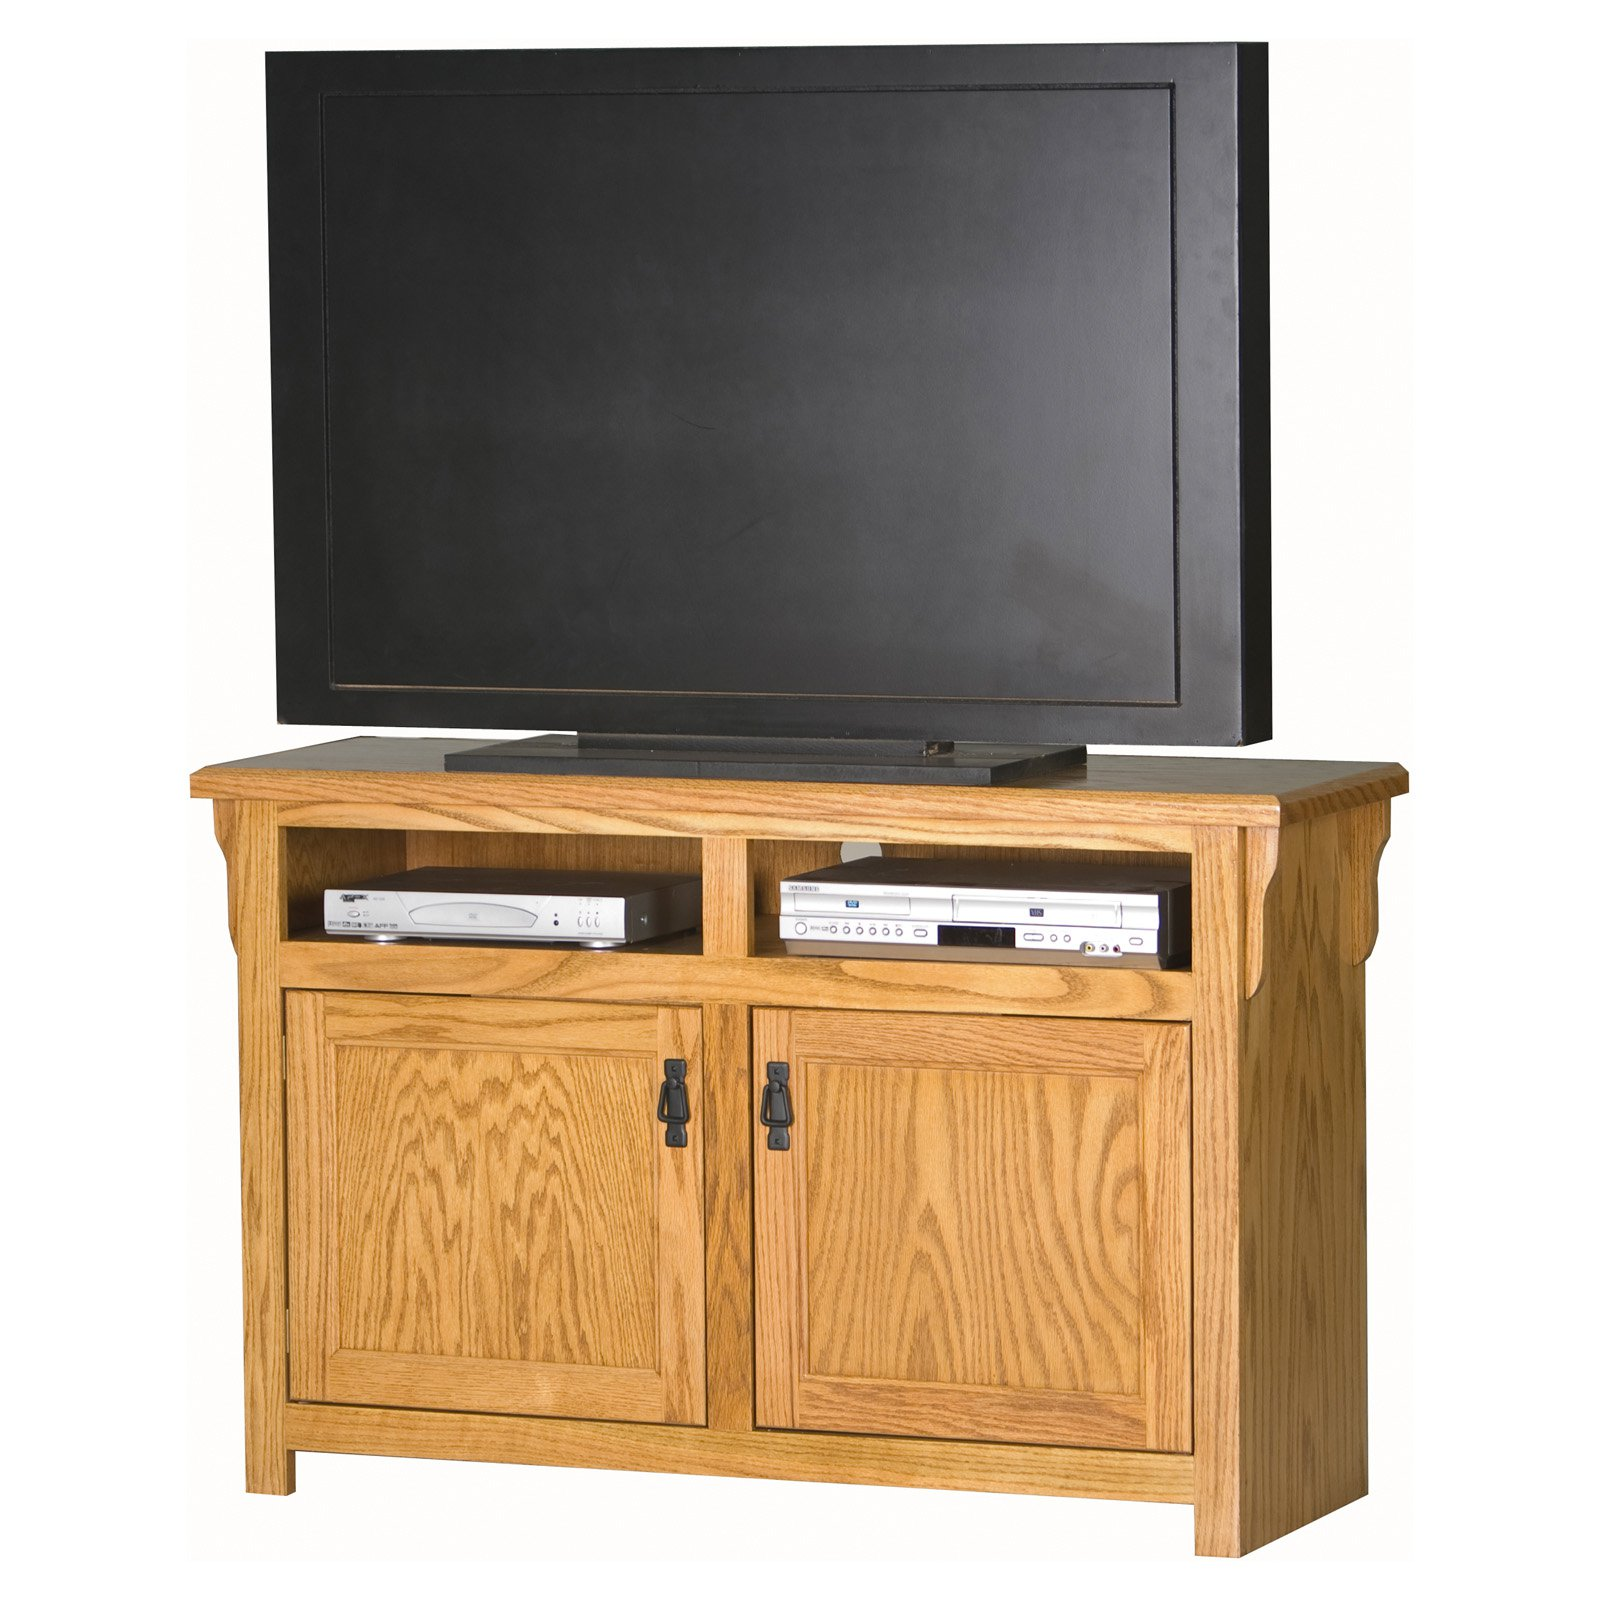 Eagle Furniture Mission 49 in. Wood Panel TV Stand